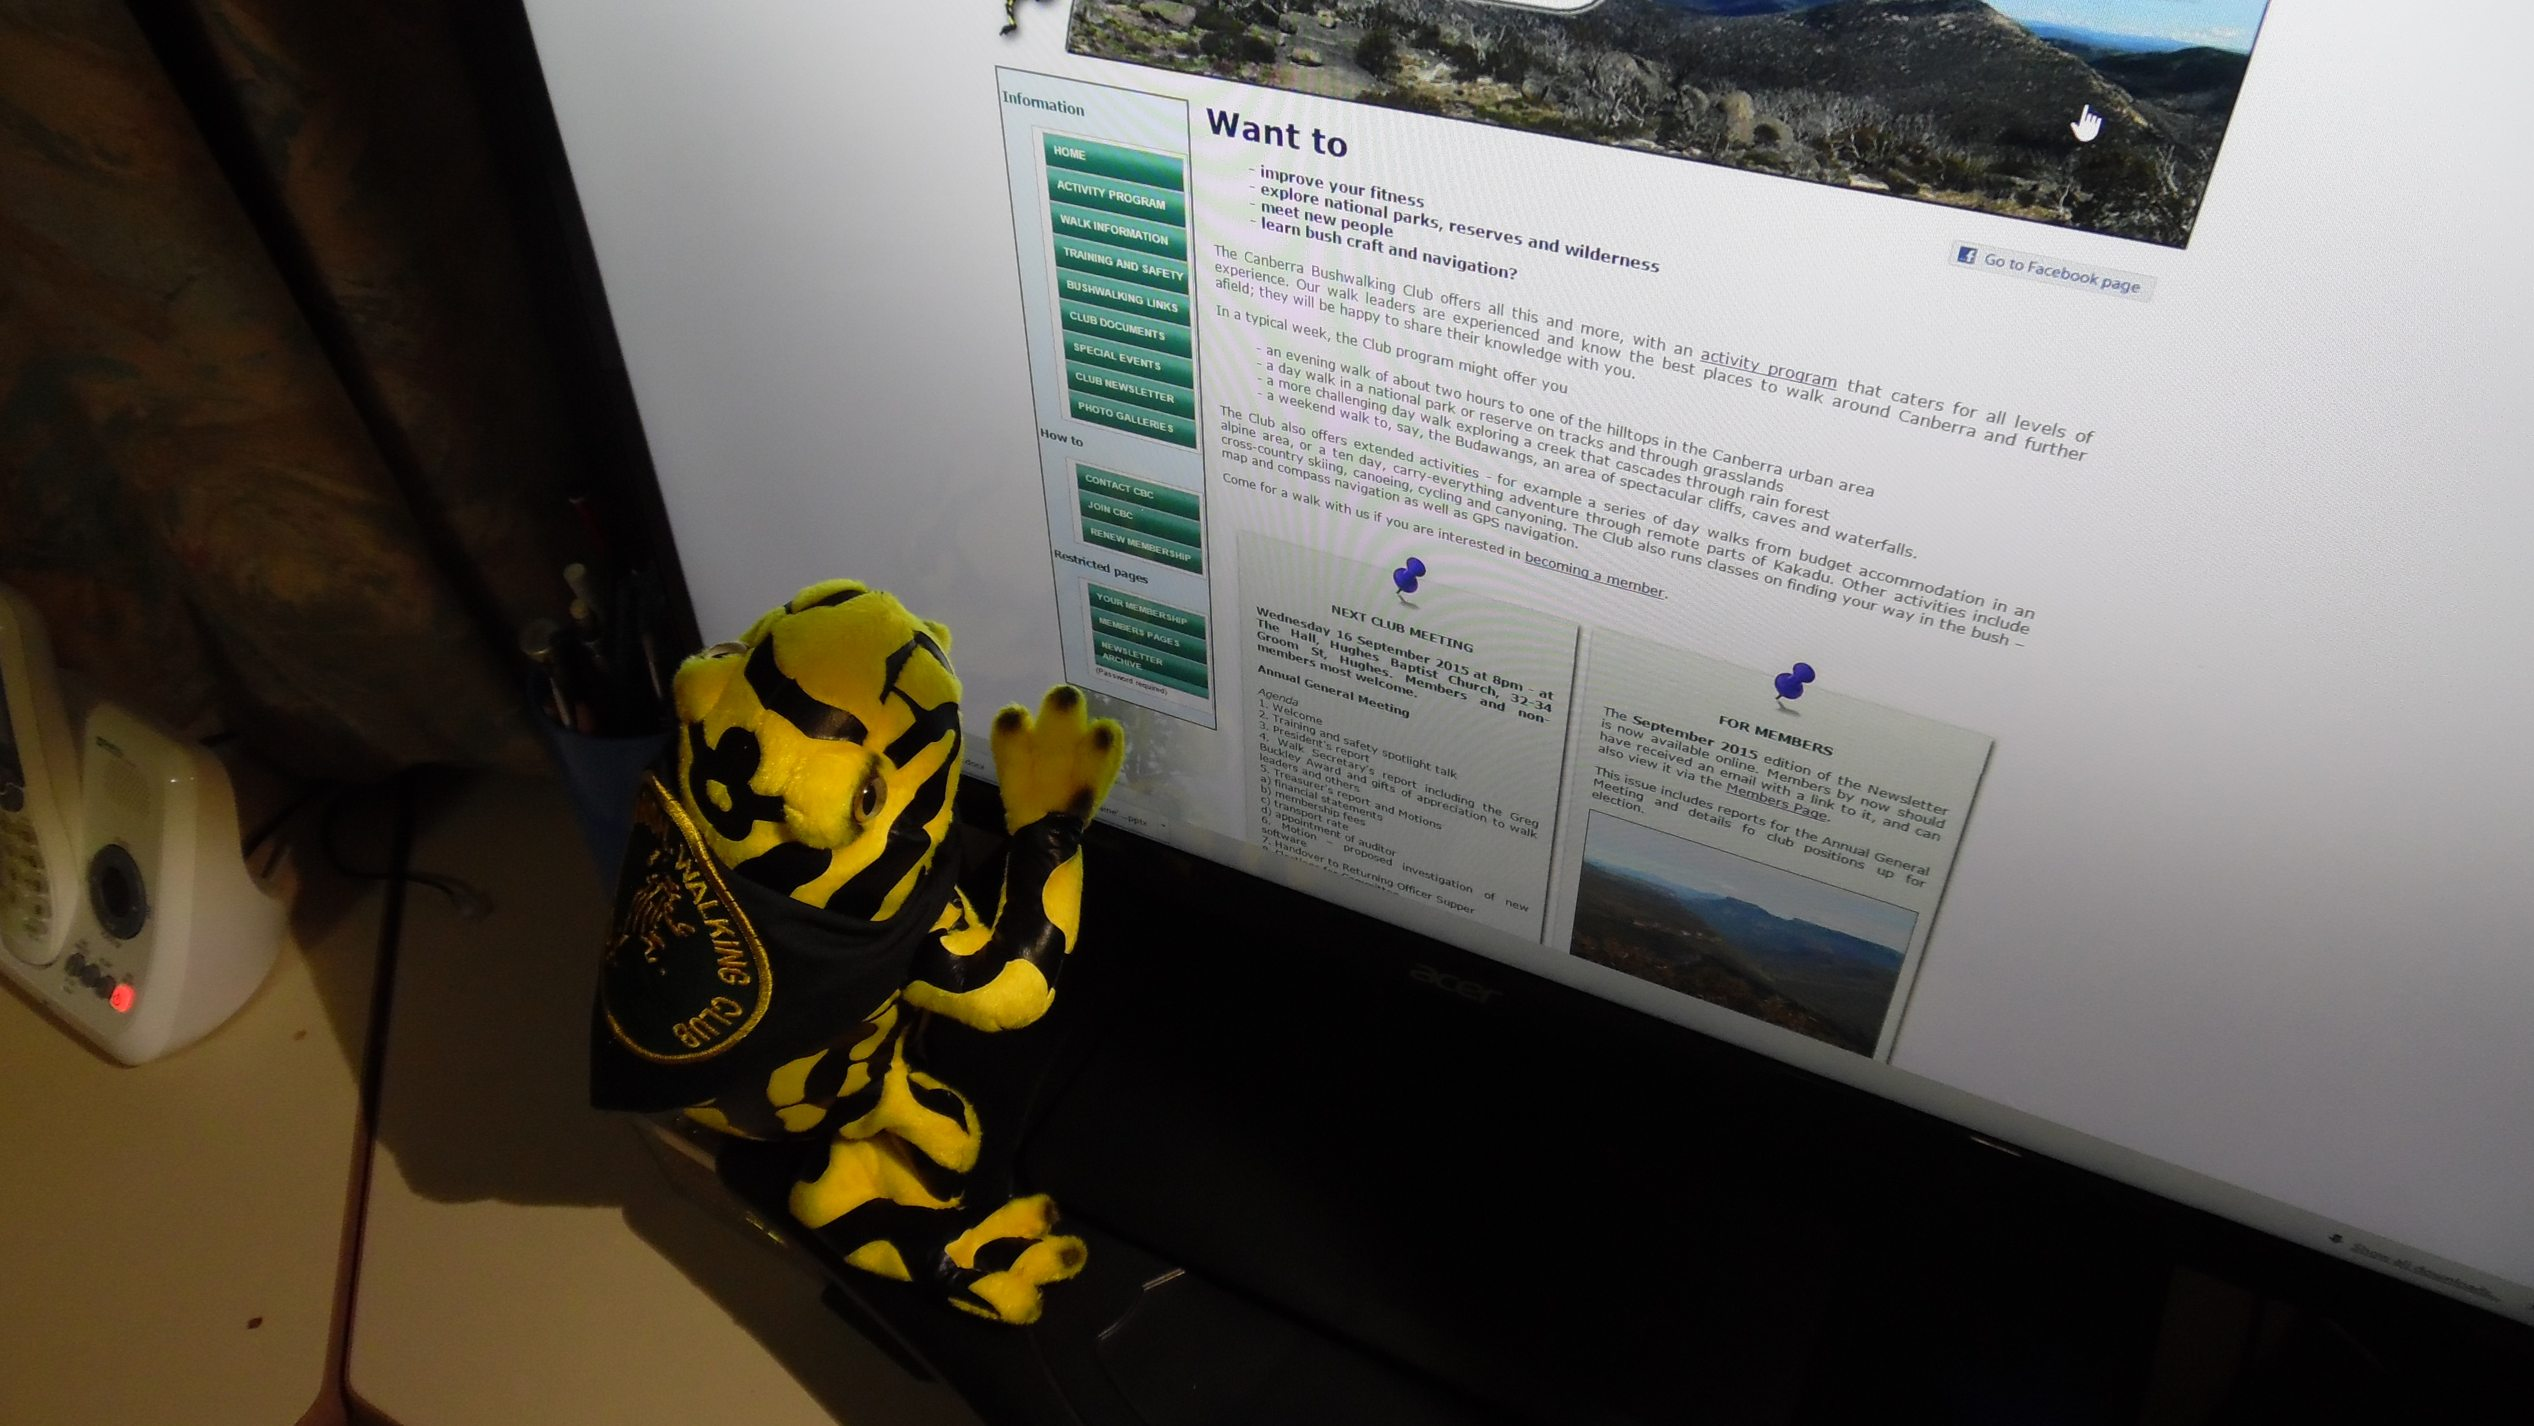 Frog with former web site